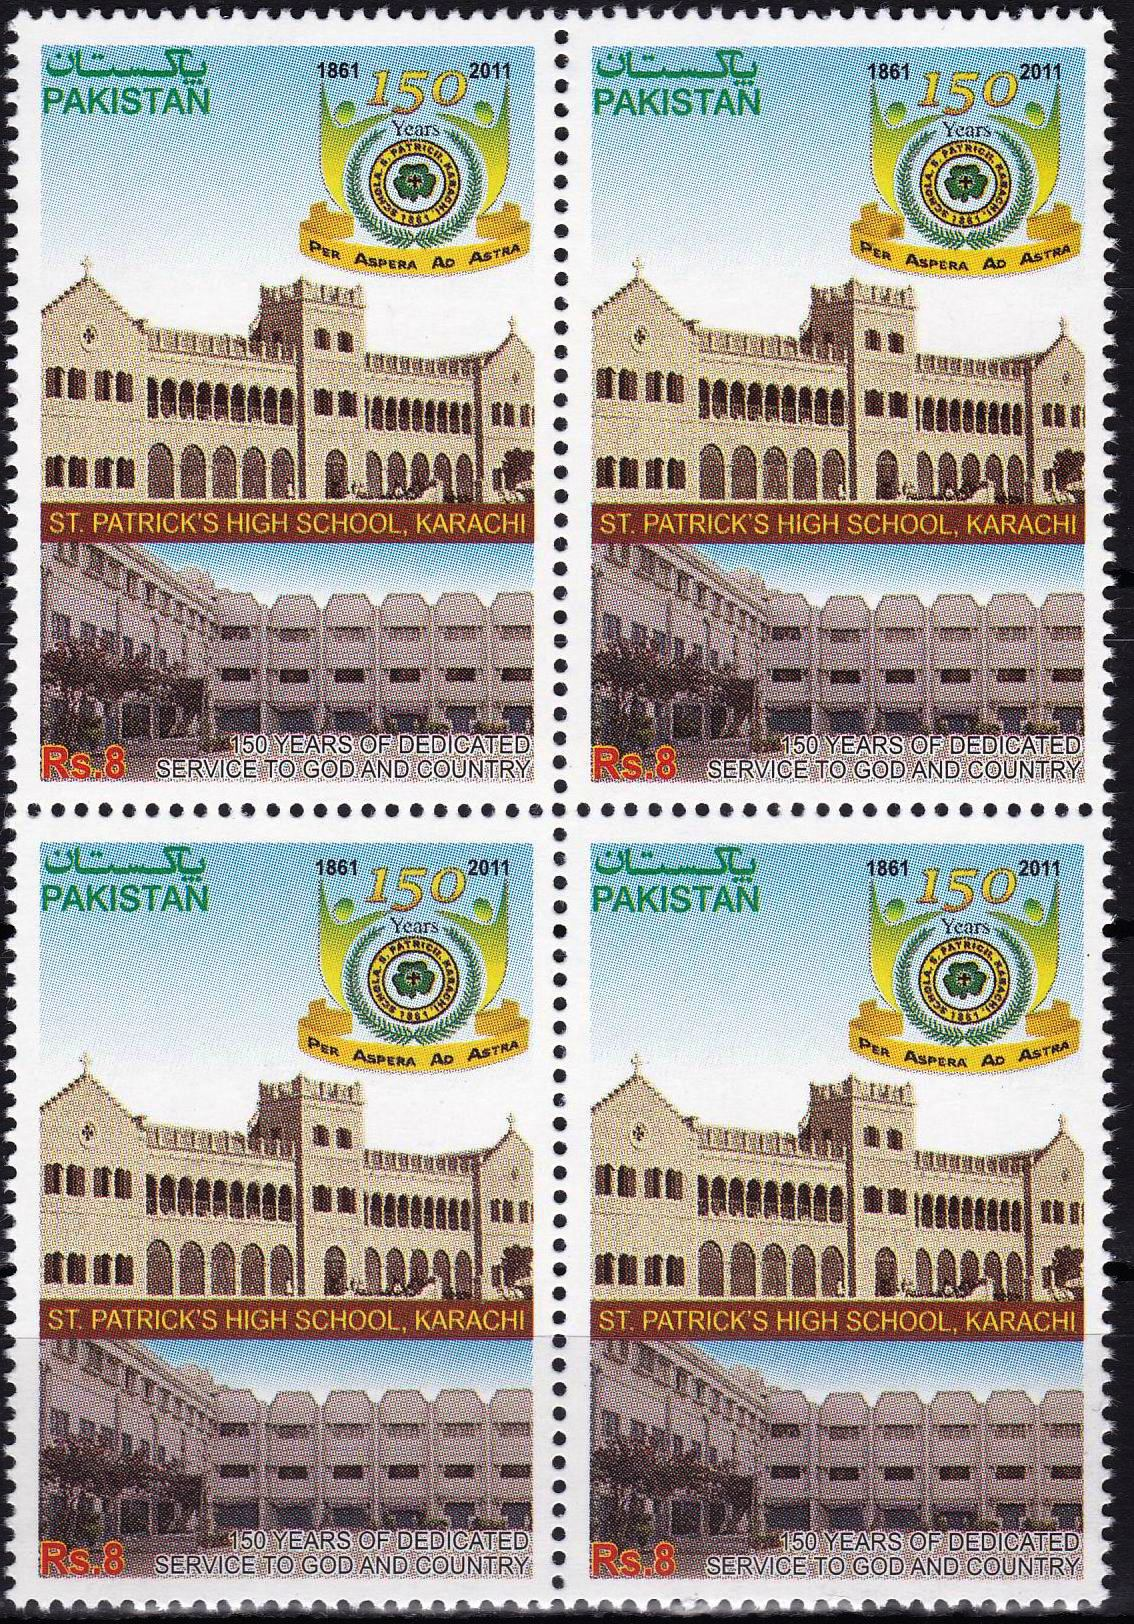 Pakistan Stamps 2011 St Patrick School